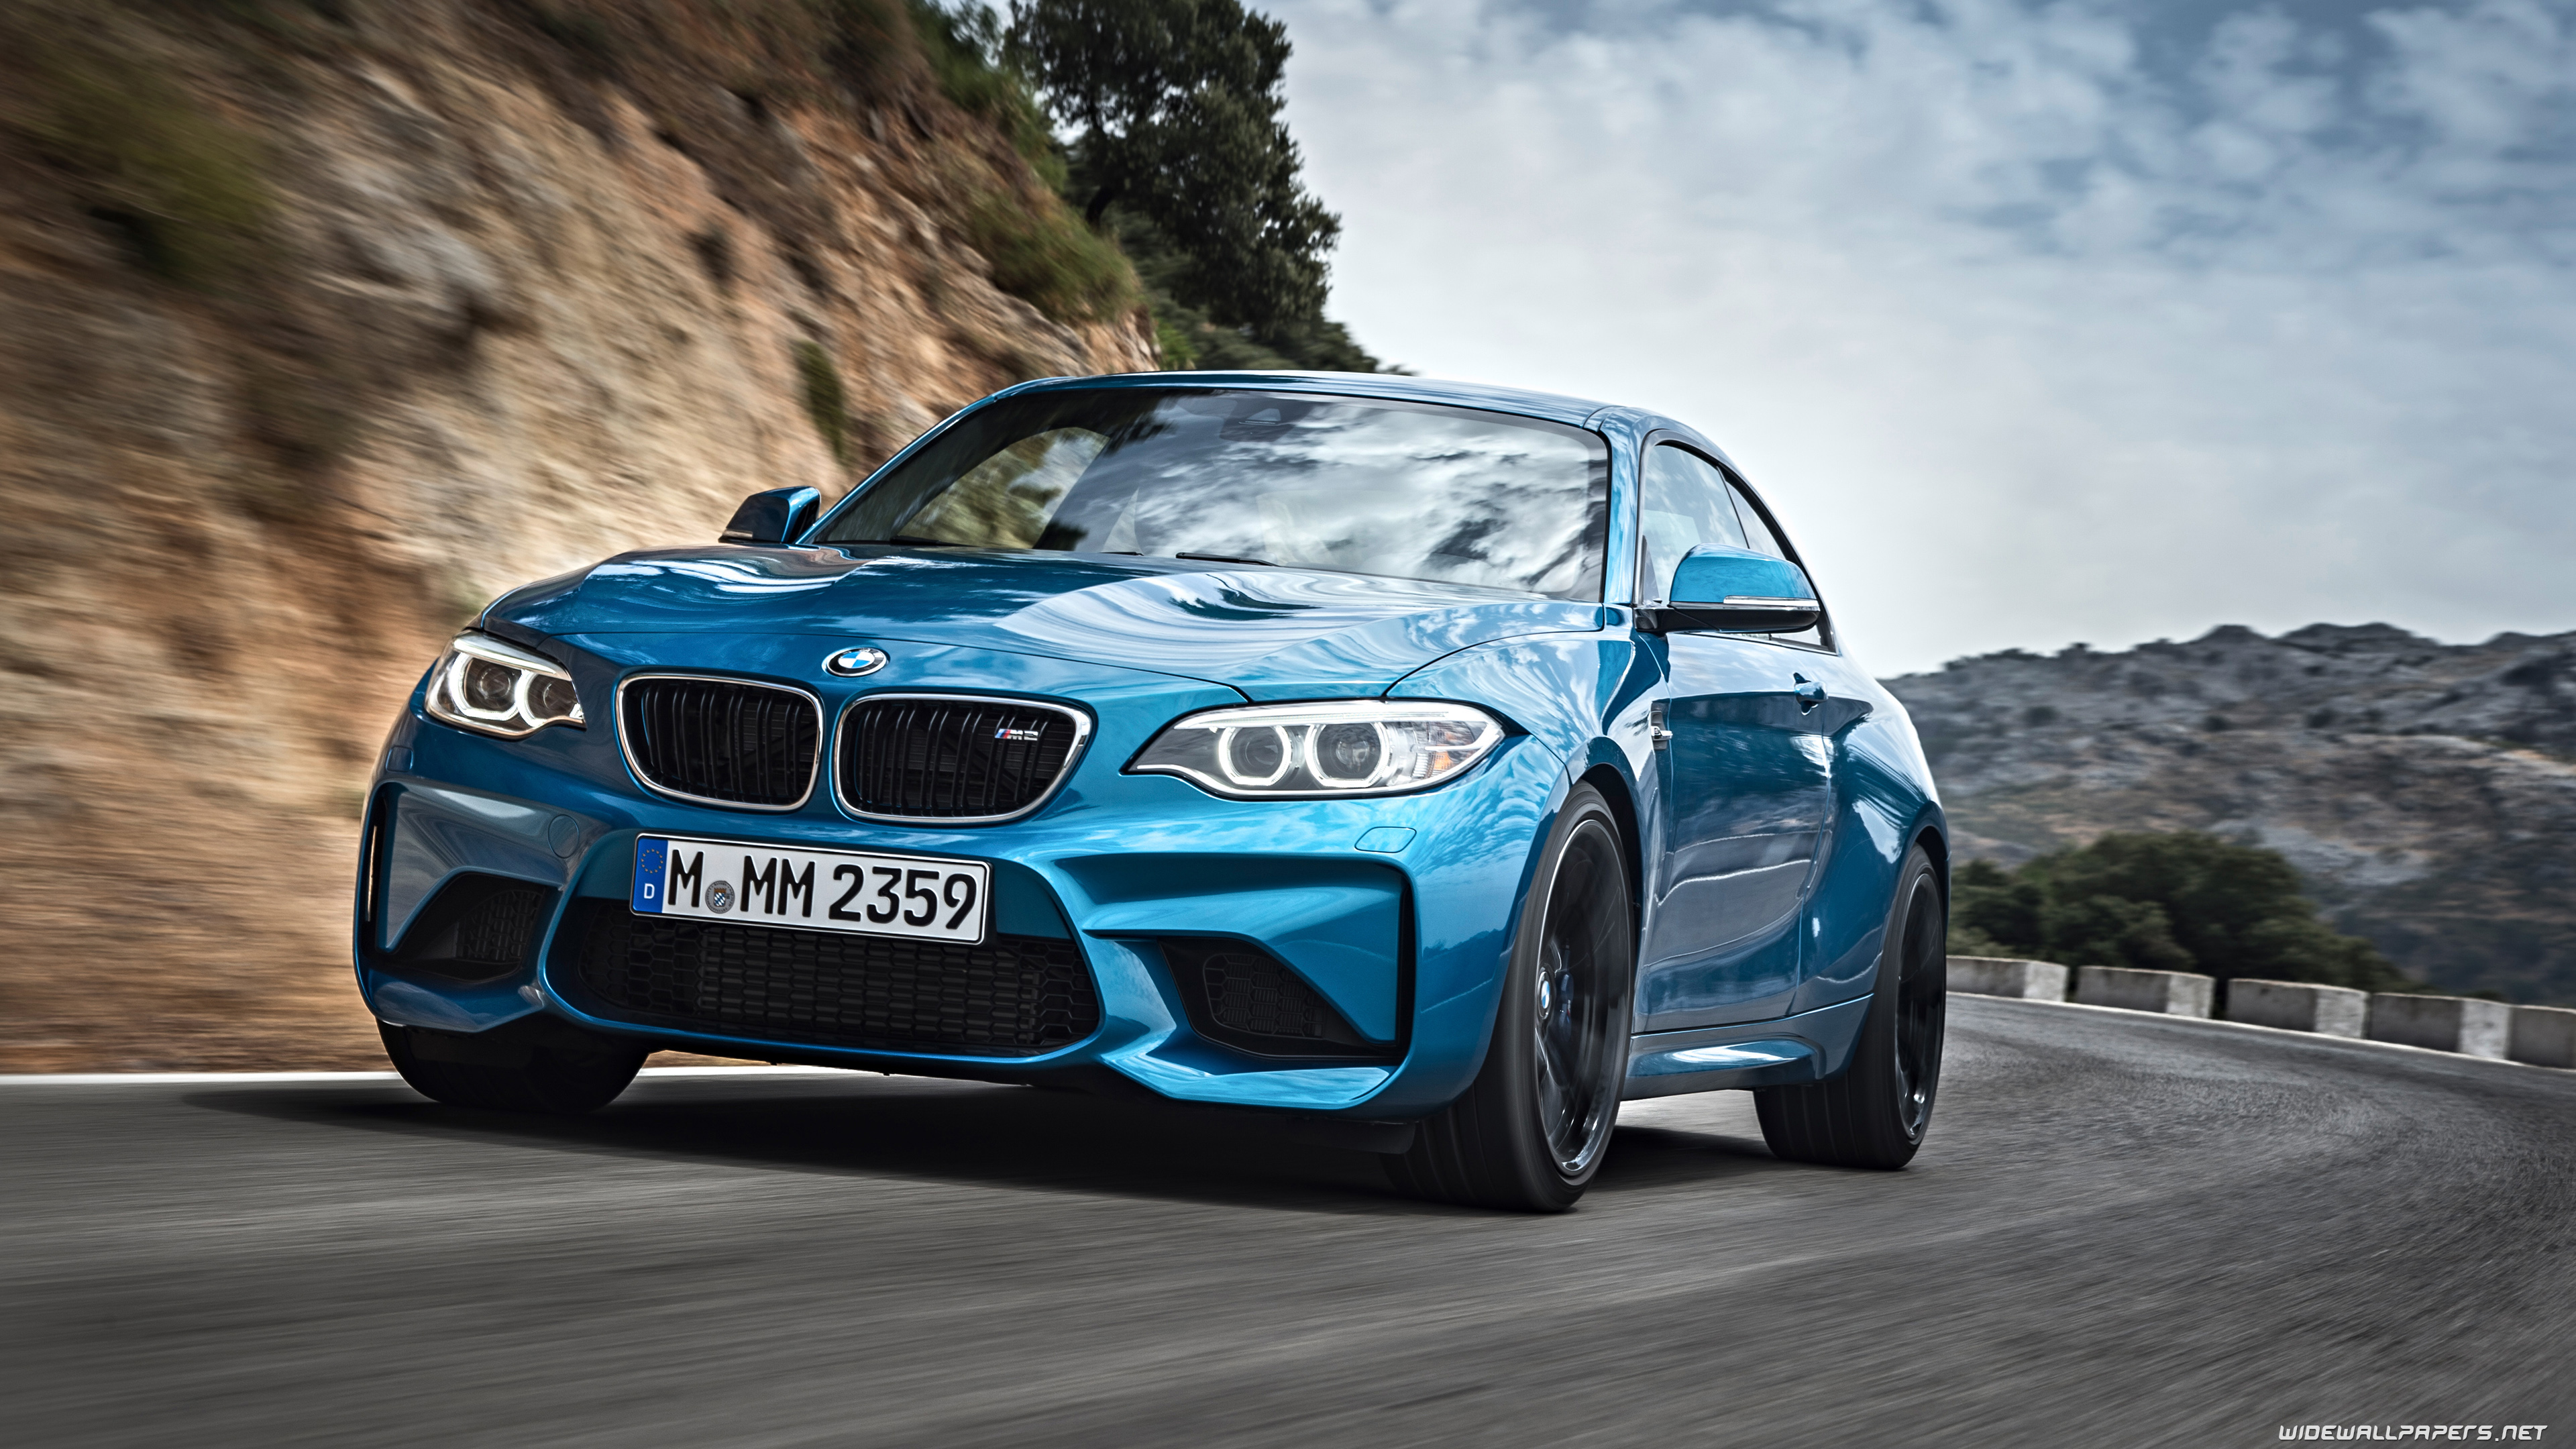 Bmw M2 Cars Desktop Wallpapers 4k Ultra Hd